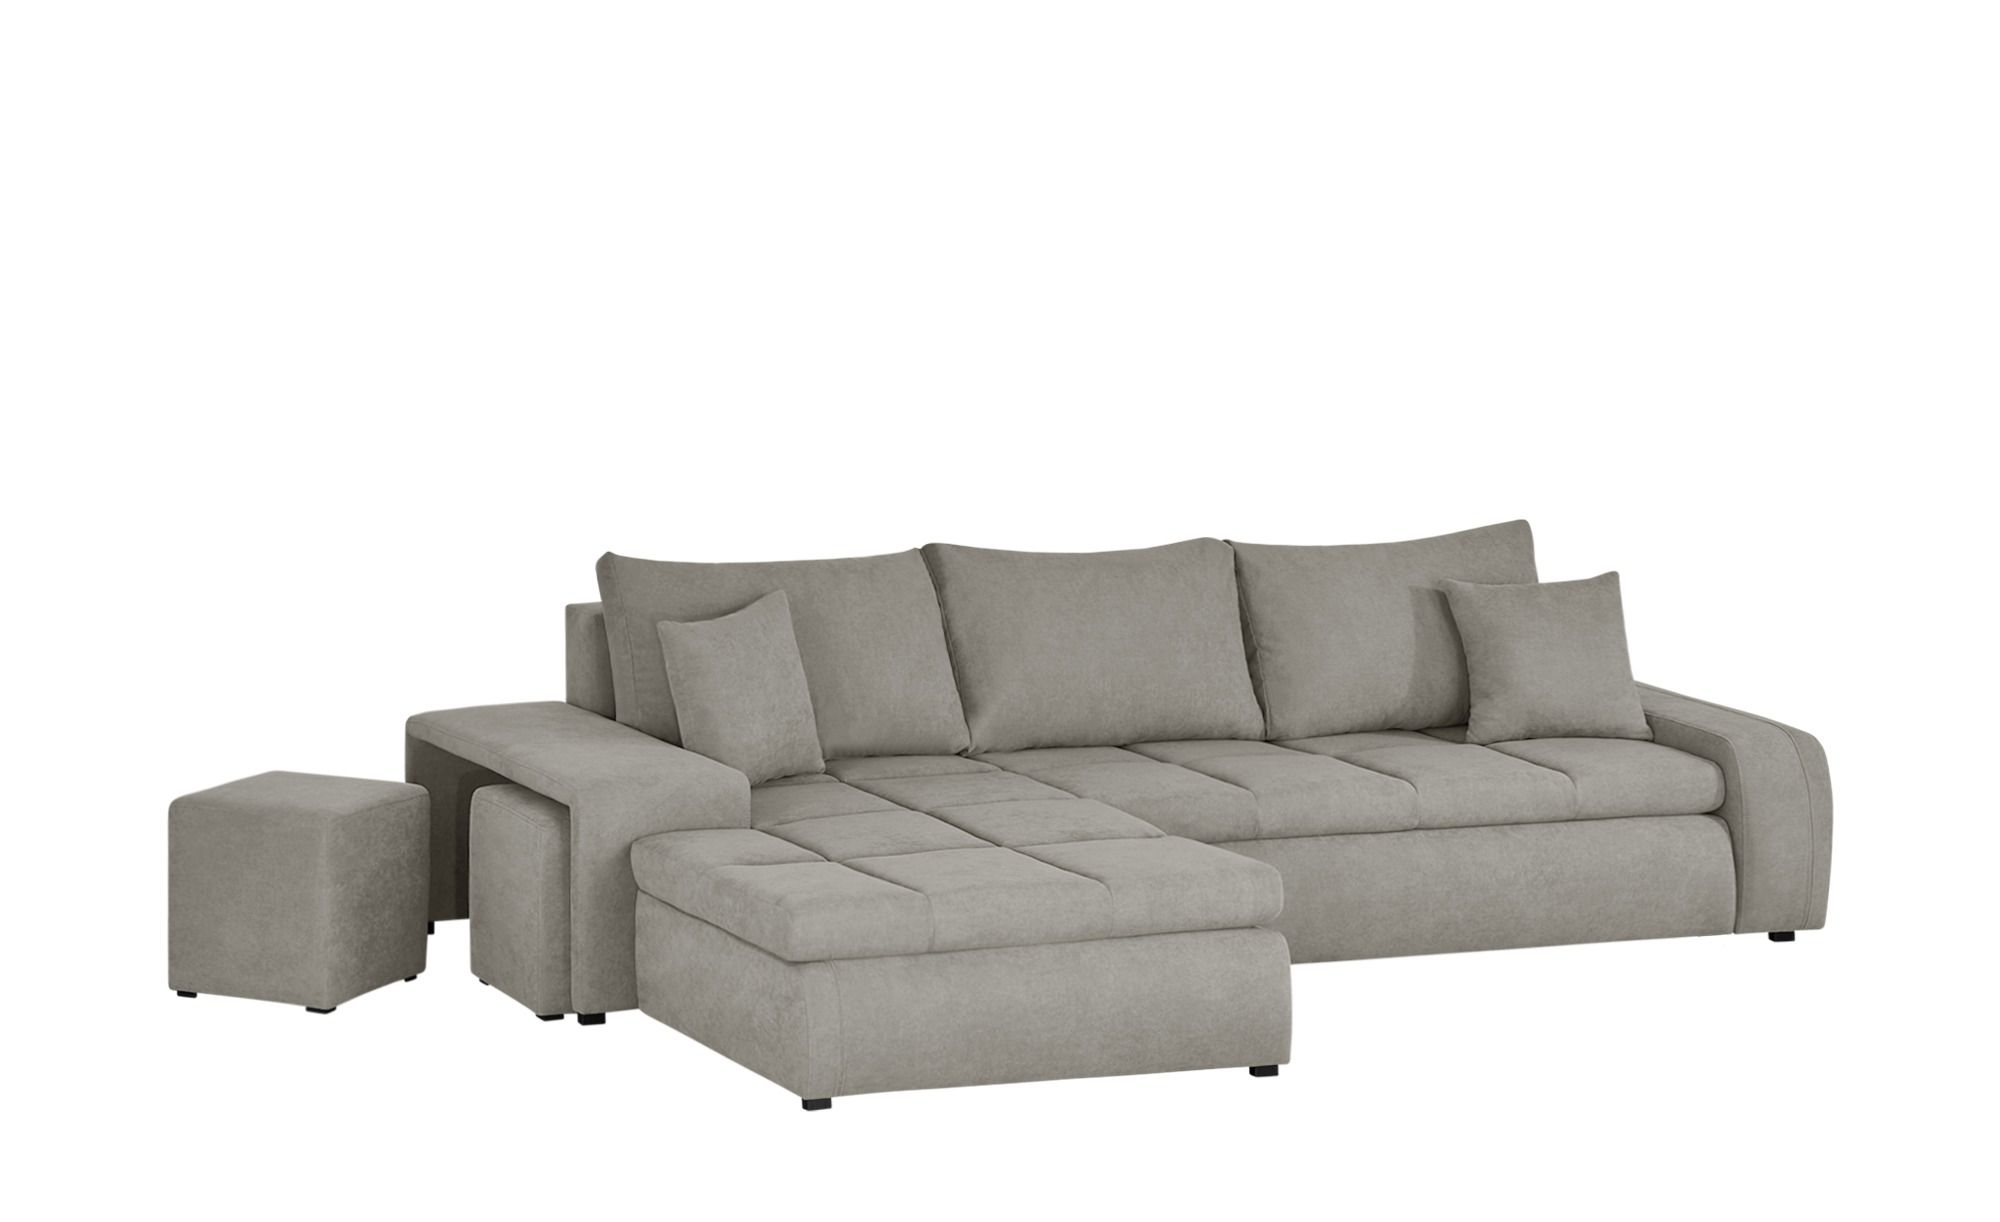 Brilliant Switch Ecksofa Mit 2 Hockern Beige Mikrofaser Riva Beige Alphanode Cool Chair Designs And Ideas Alphanodeonline